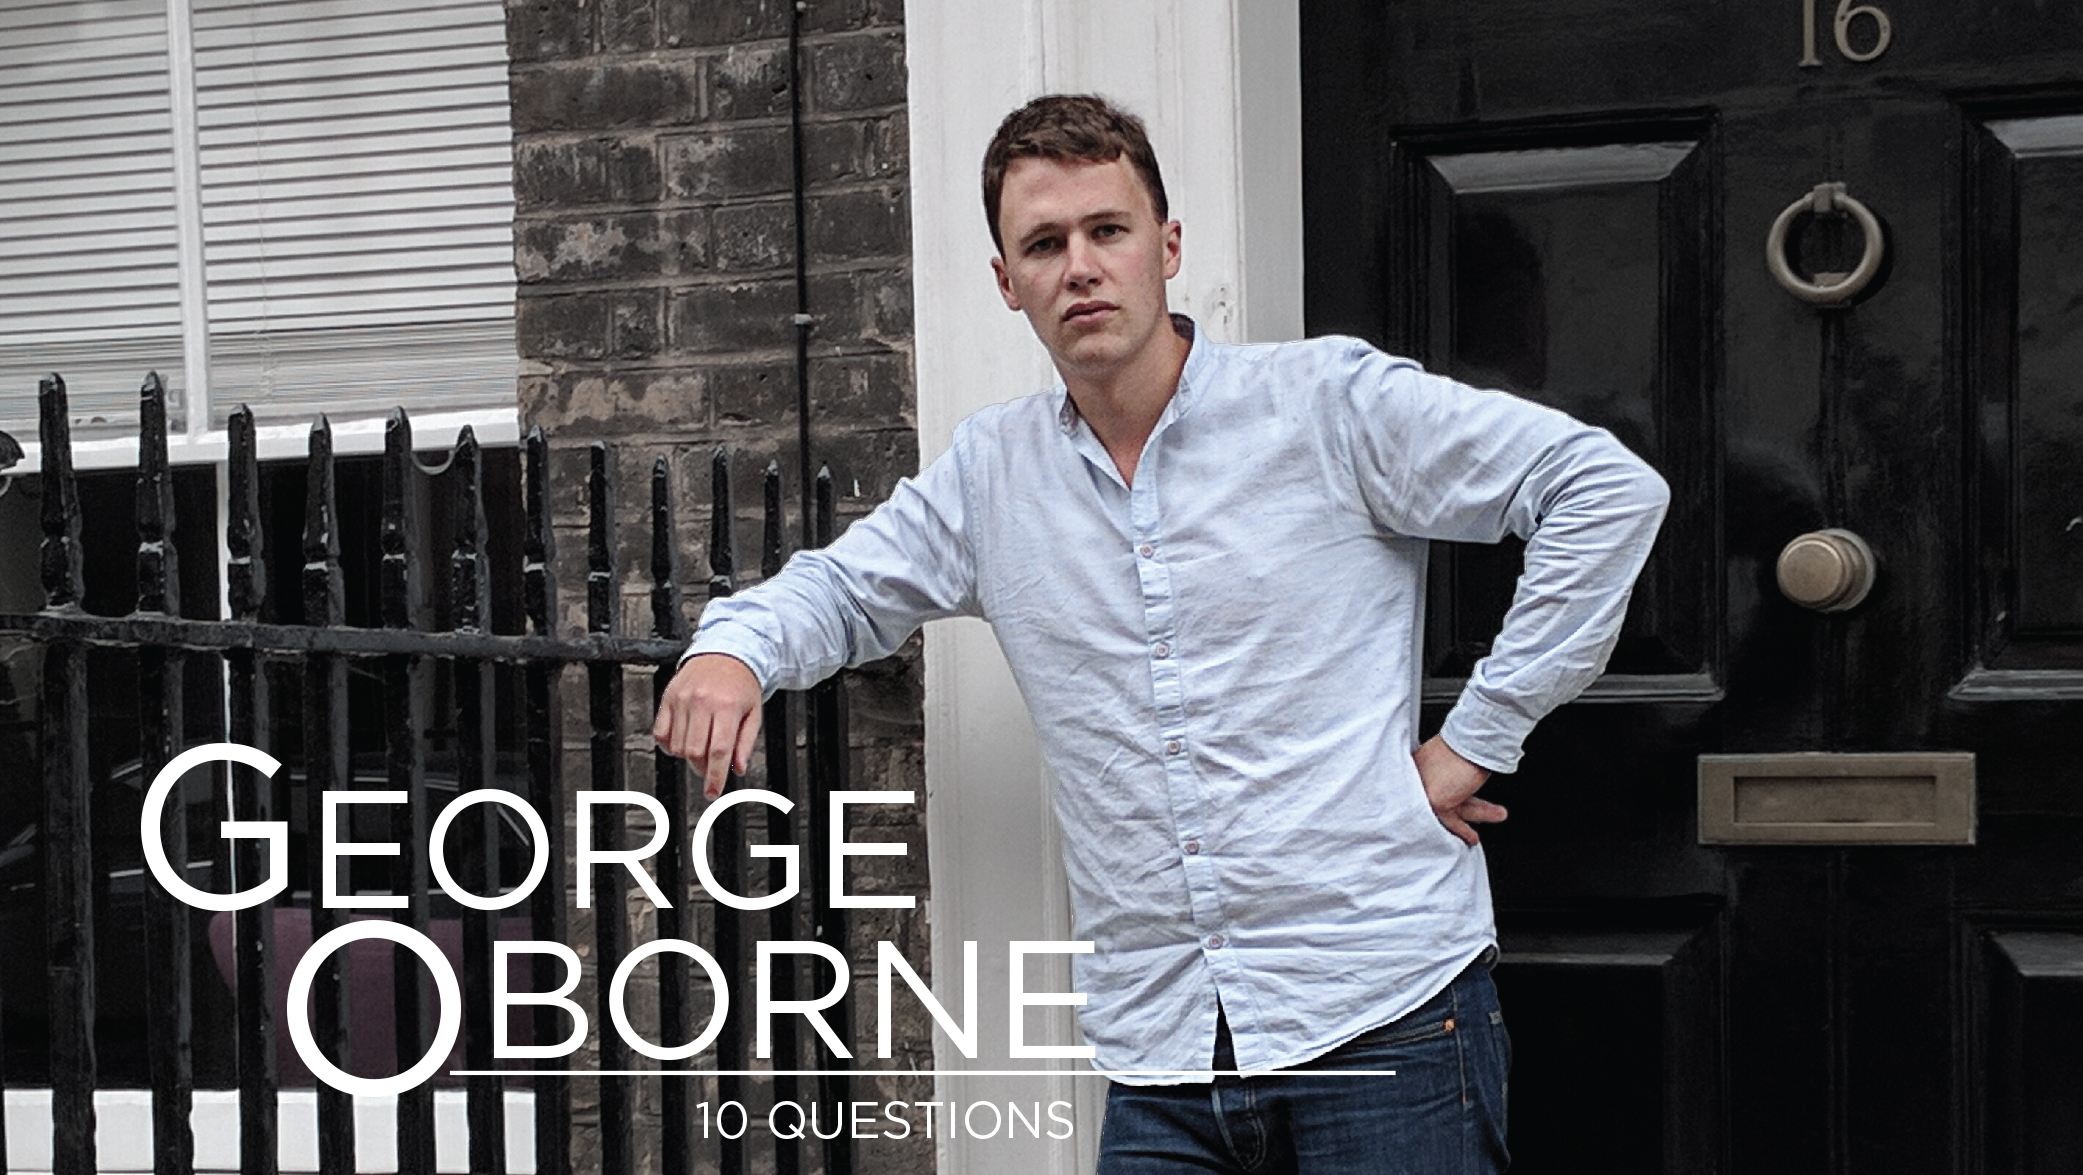 10 Questions – George Oborne